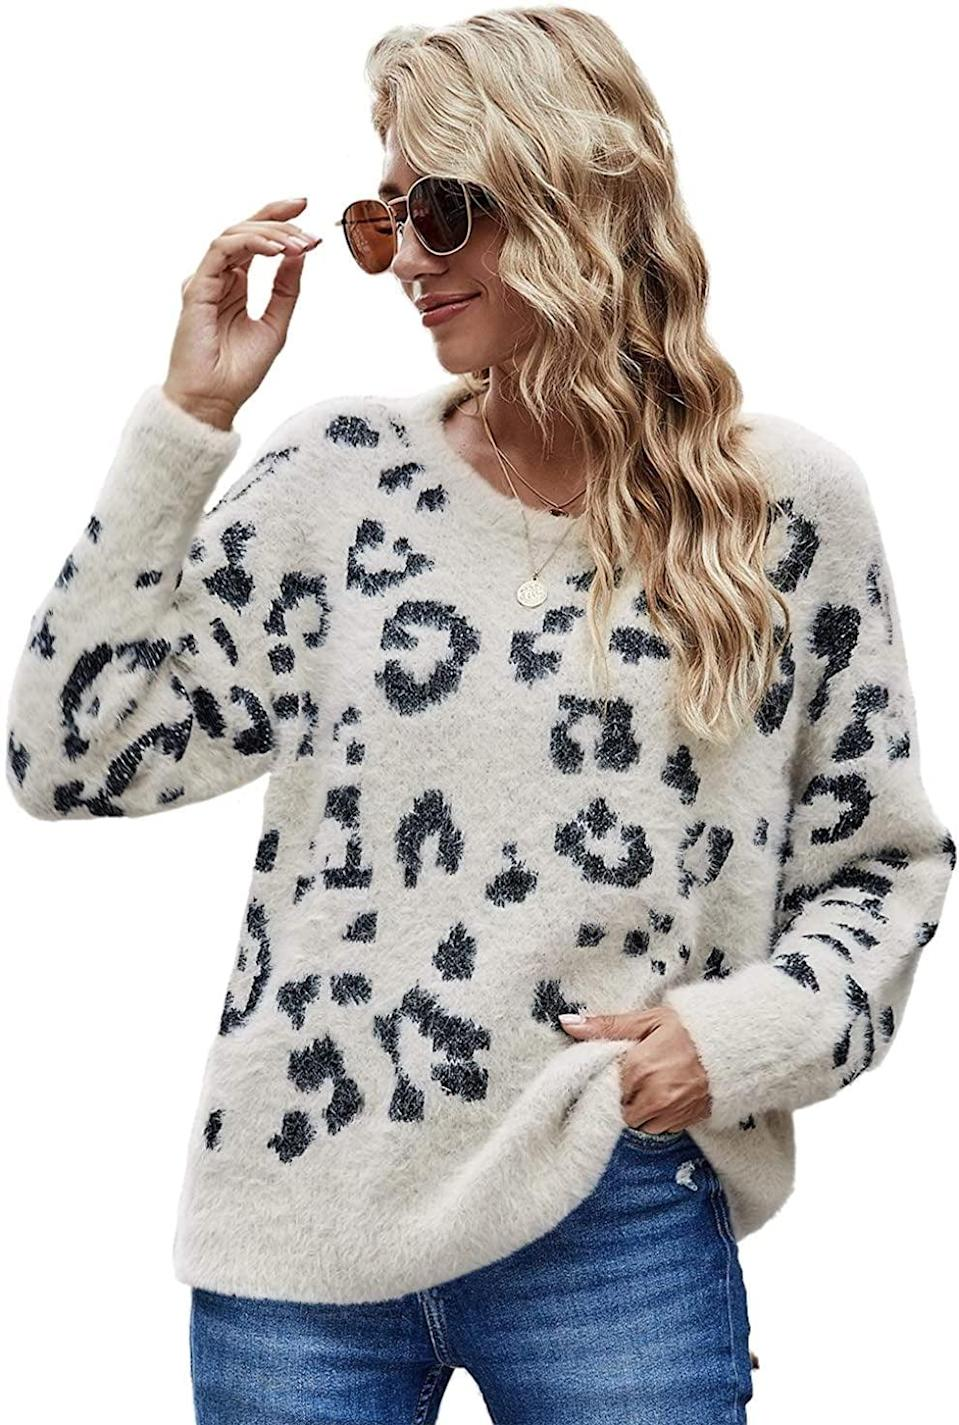 <p>This <span>Hzsonne Casual Leopard Crewneck Loose Fit Sweater</span> ($26-$30) is both fuzzy <em>and</em> cute.</p>